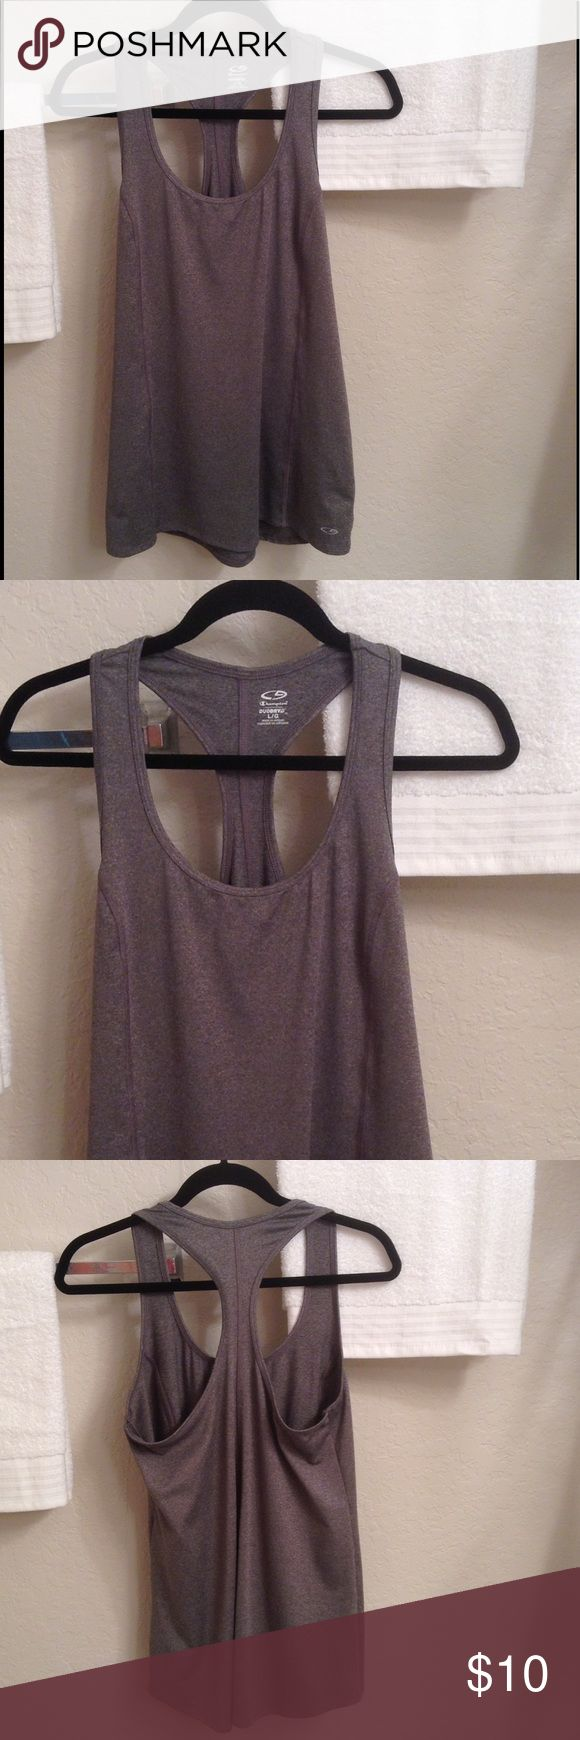 Champion Duo Dry Sleeveless Tunic This grey tunic with white specs throughout has a racerback & is 90% Polyester/10% Spandex.  The chest measures 36 inches, the length is 27 inches.  Perfect condition!! Champion Tops